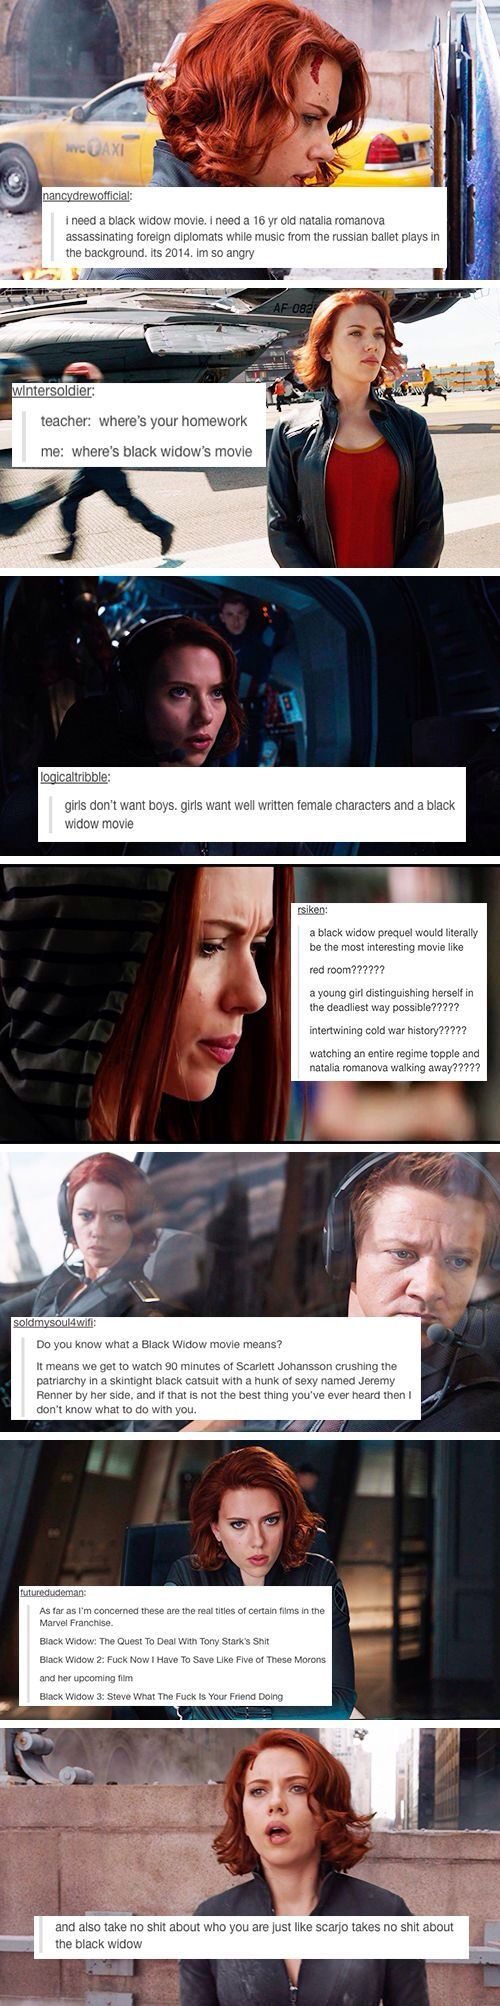 Why has a Black Widow movie not happened yet?????